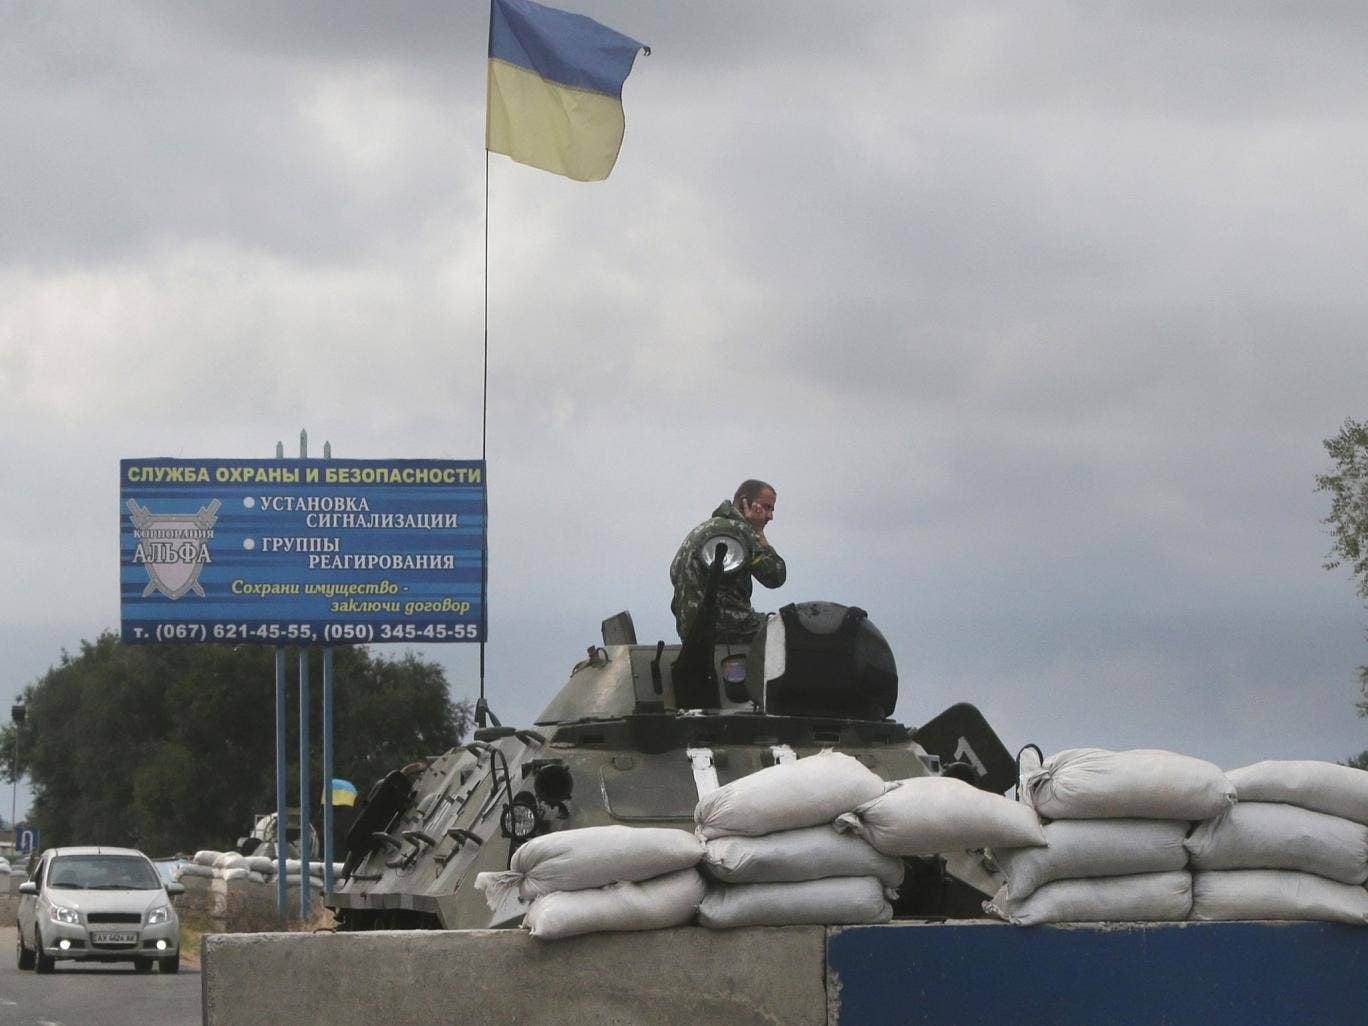 Ukrainian forces guard a checkpoint in the town of Mariupol, eastern Ukraine, which pro-Russian separatists claim is a major target in their rebellion against the government